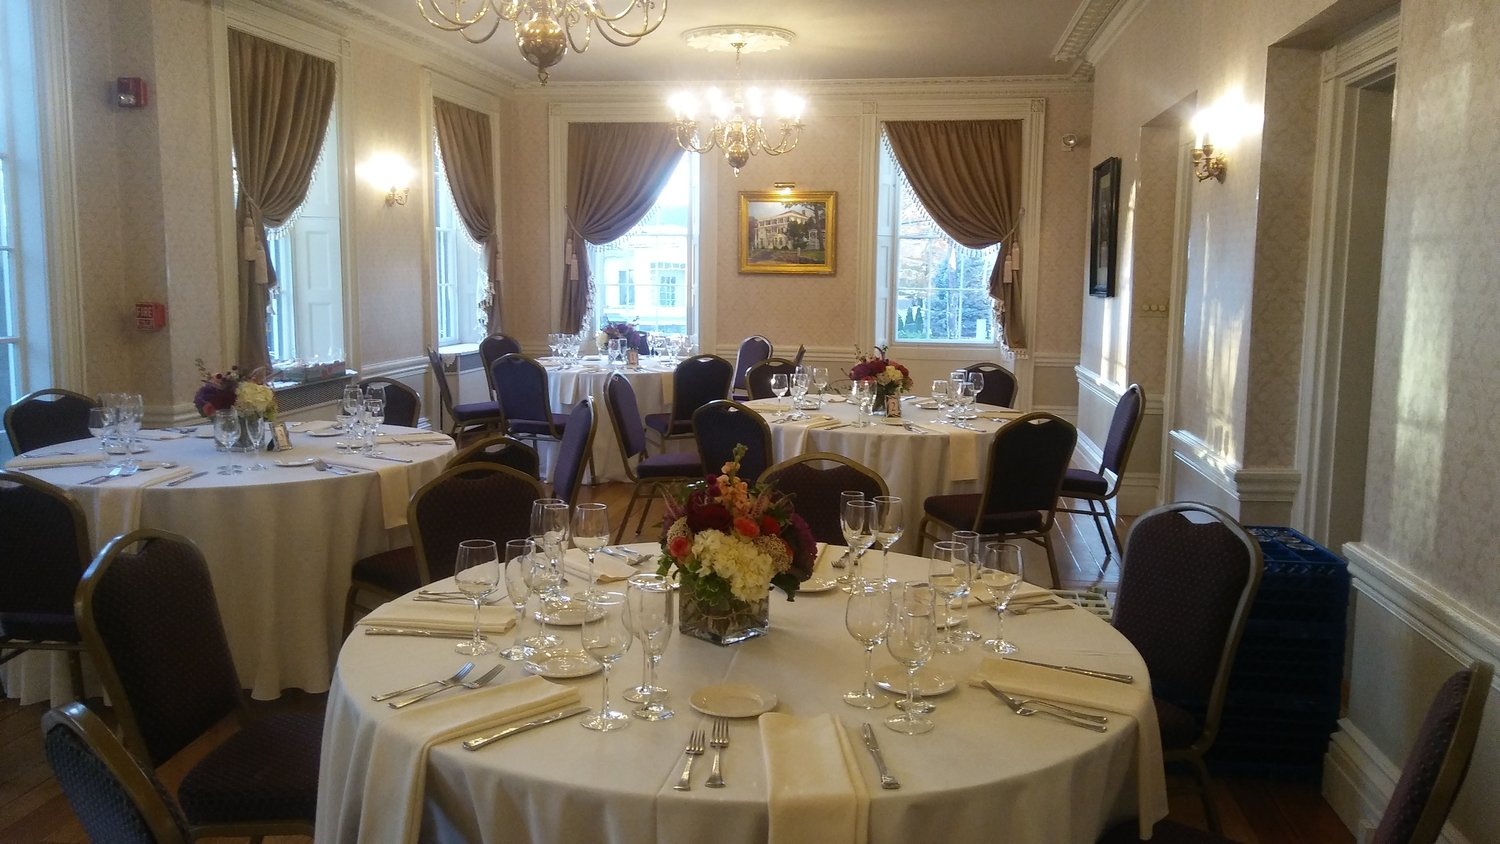 The Great Room dressed for a formal event. Photo: Mary Bowen, Asa Waters Mansion.